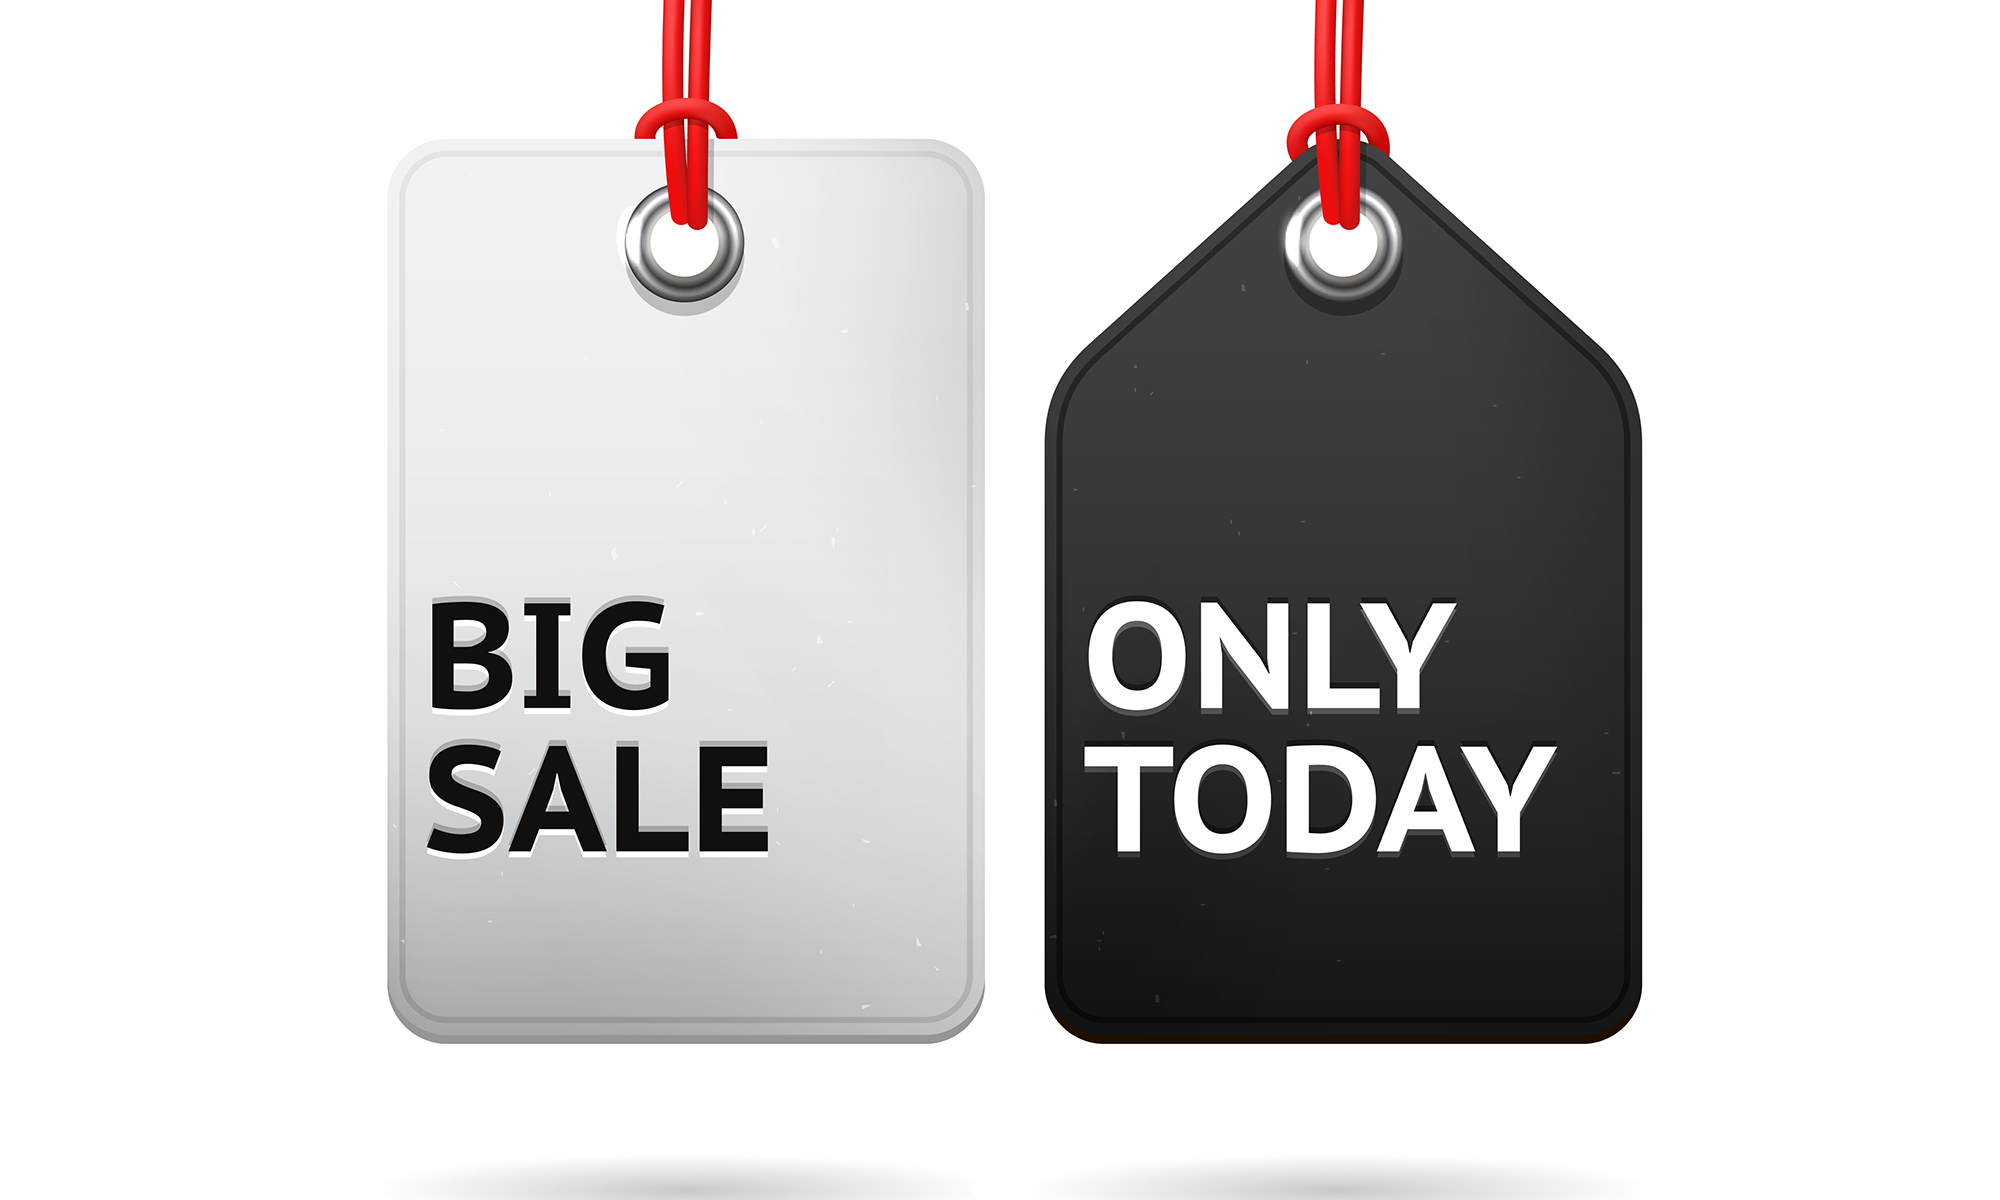 Big Sale Only Today Hanging Tags